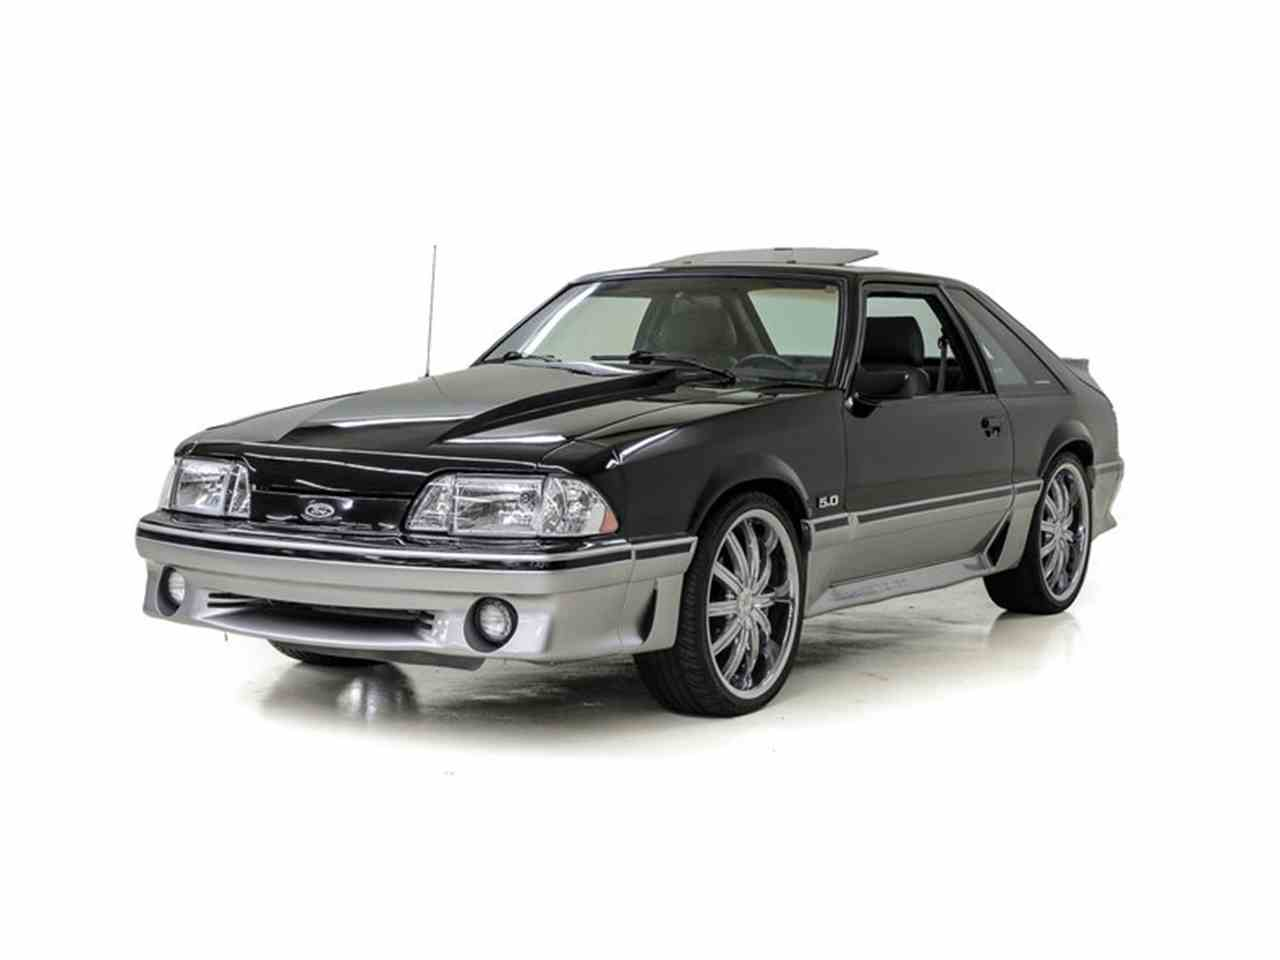 1990 ford mustang gt for sale cc 1049324. Black Bedroom Furniture Sets. Home Design Ideas